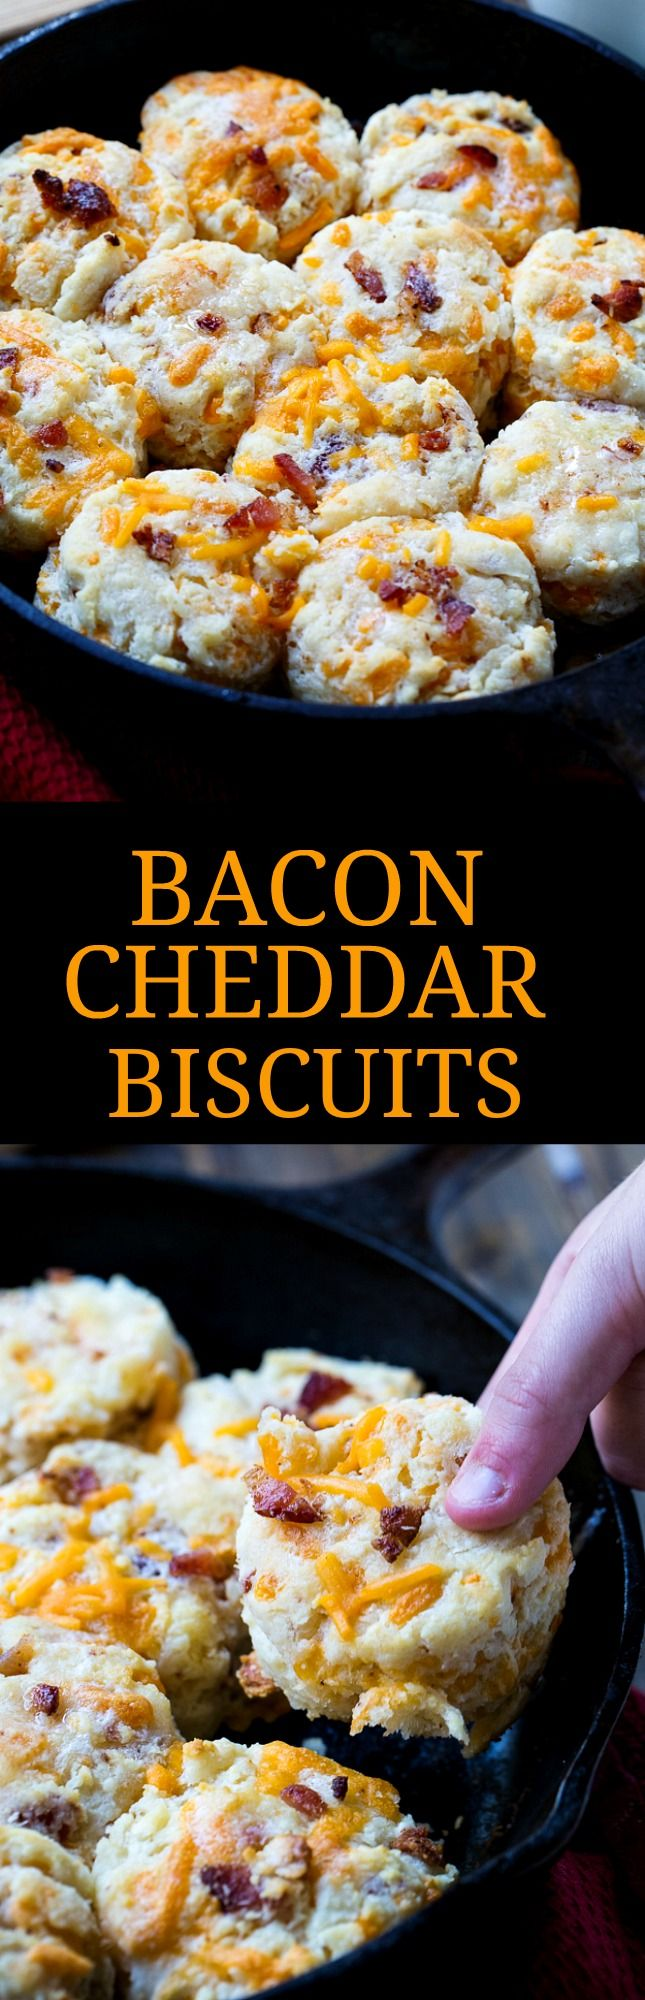 Bacon Cheddar Biscuits | Recipe | Bacon, Cheddar and Biscuits